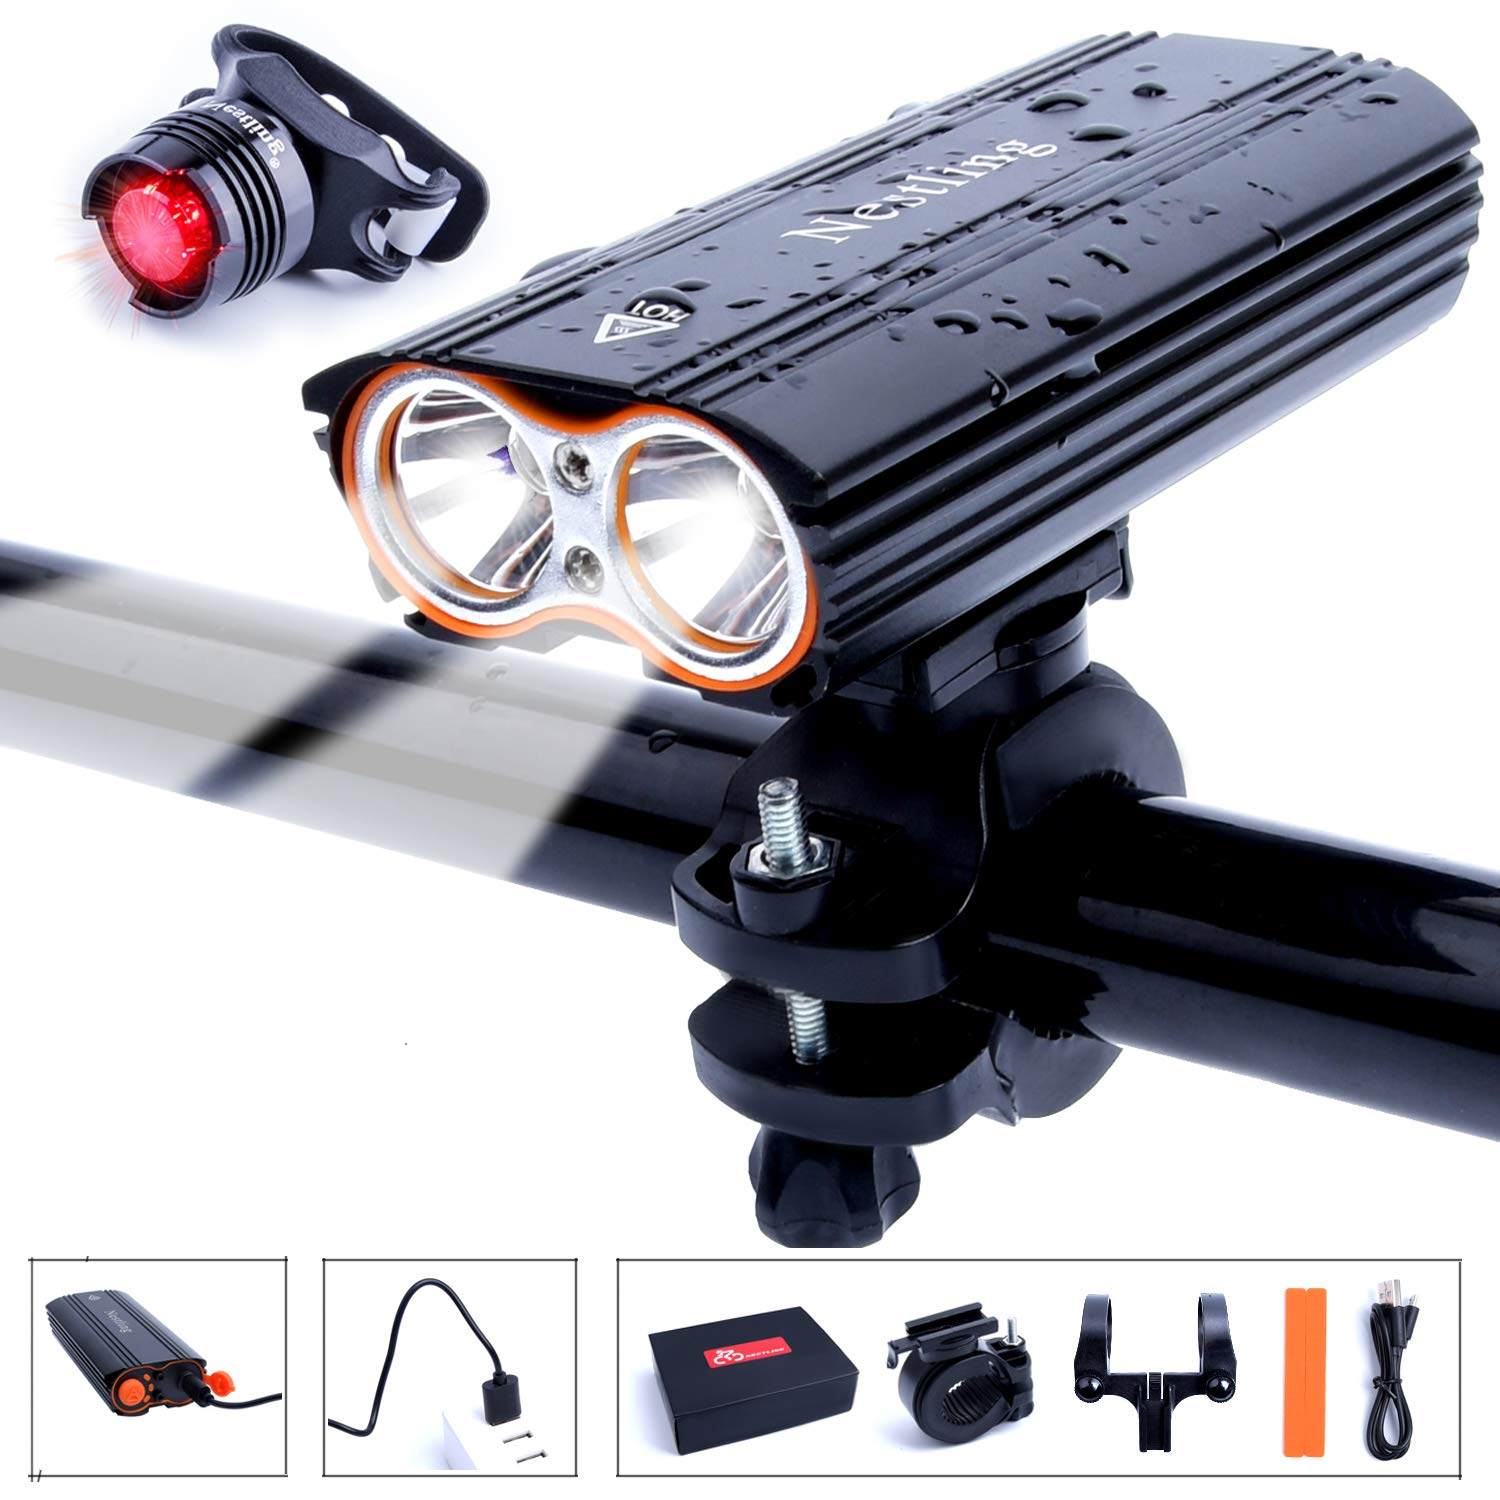 HUAYUU Bike Light Set,USB Rechargeable Bike Light Front 2400LM Mountain Bike Lights IP65 Waterproof Bicycle Headlights 4 Modes Cycle Lights Safety for Night